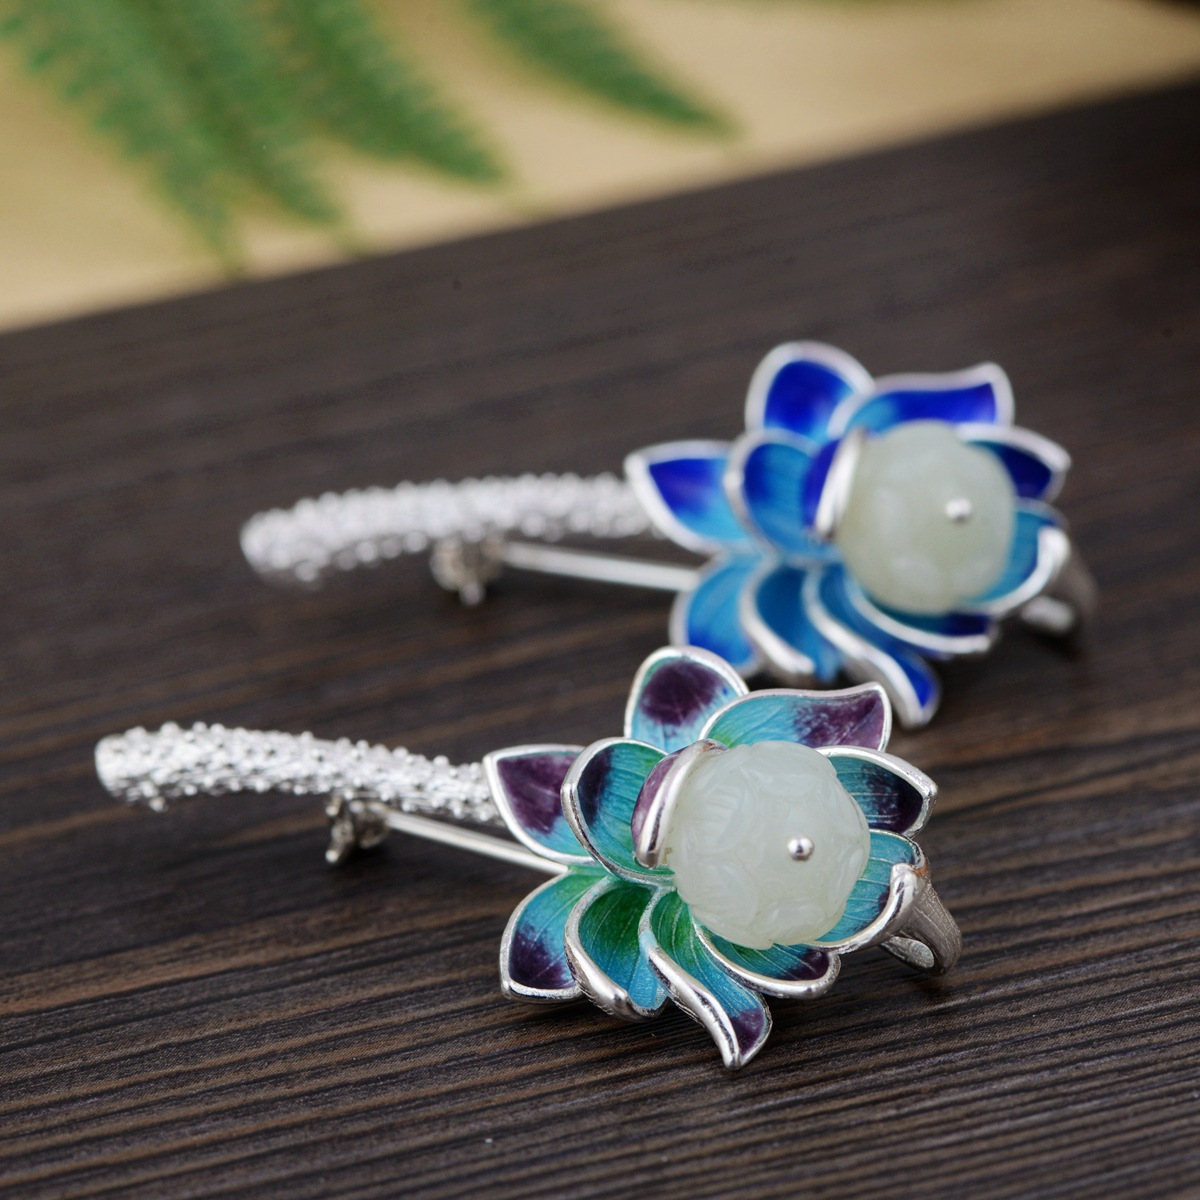 S925 sterling silver inlaid natural stone Thai silver beautiful burning blue brooch female pendant new products s925 sterling silver inlaid natural stone thai silver beautiful burning blue brooch female pendant new products